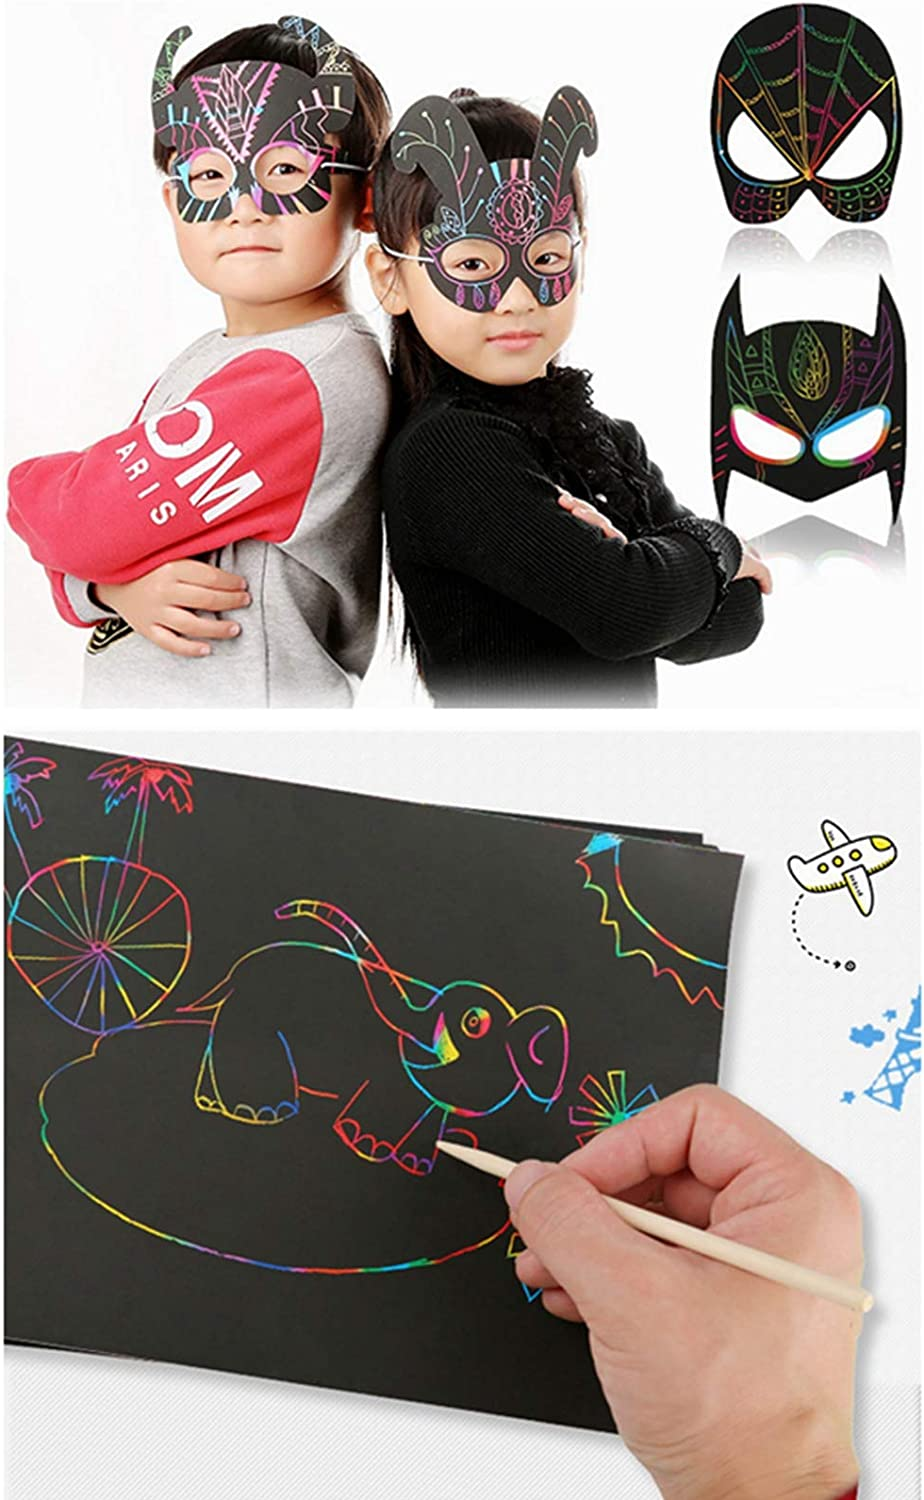 Lbsel 50 Piece Rainbow Scratch Paper L-10.6 inch,W-7.6 inch Scratch Art Paper Set for Kids Include 4 Wooden Styluses and 4 Drawing Stencils for Birthday Party Favor Game Activities